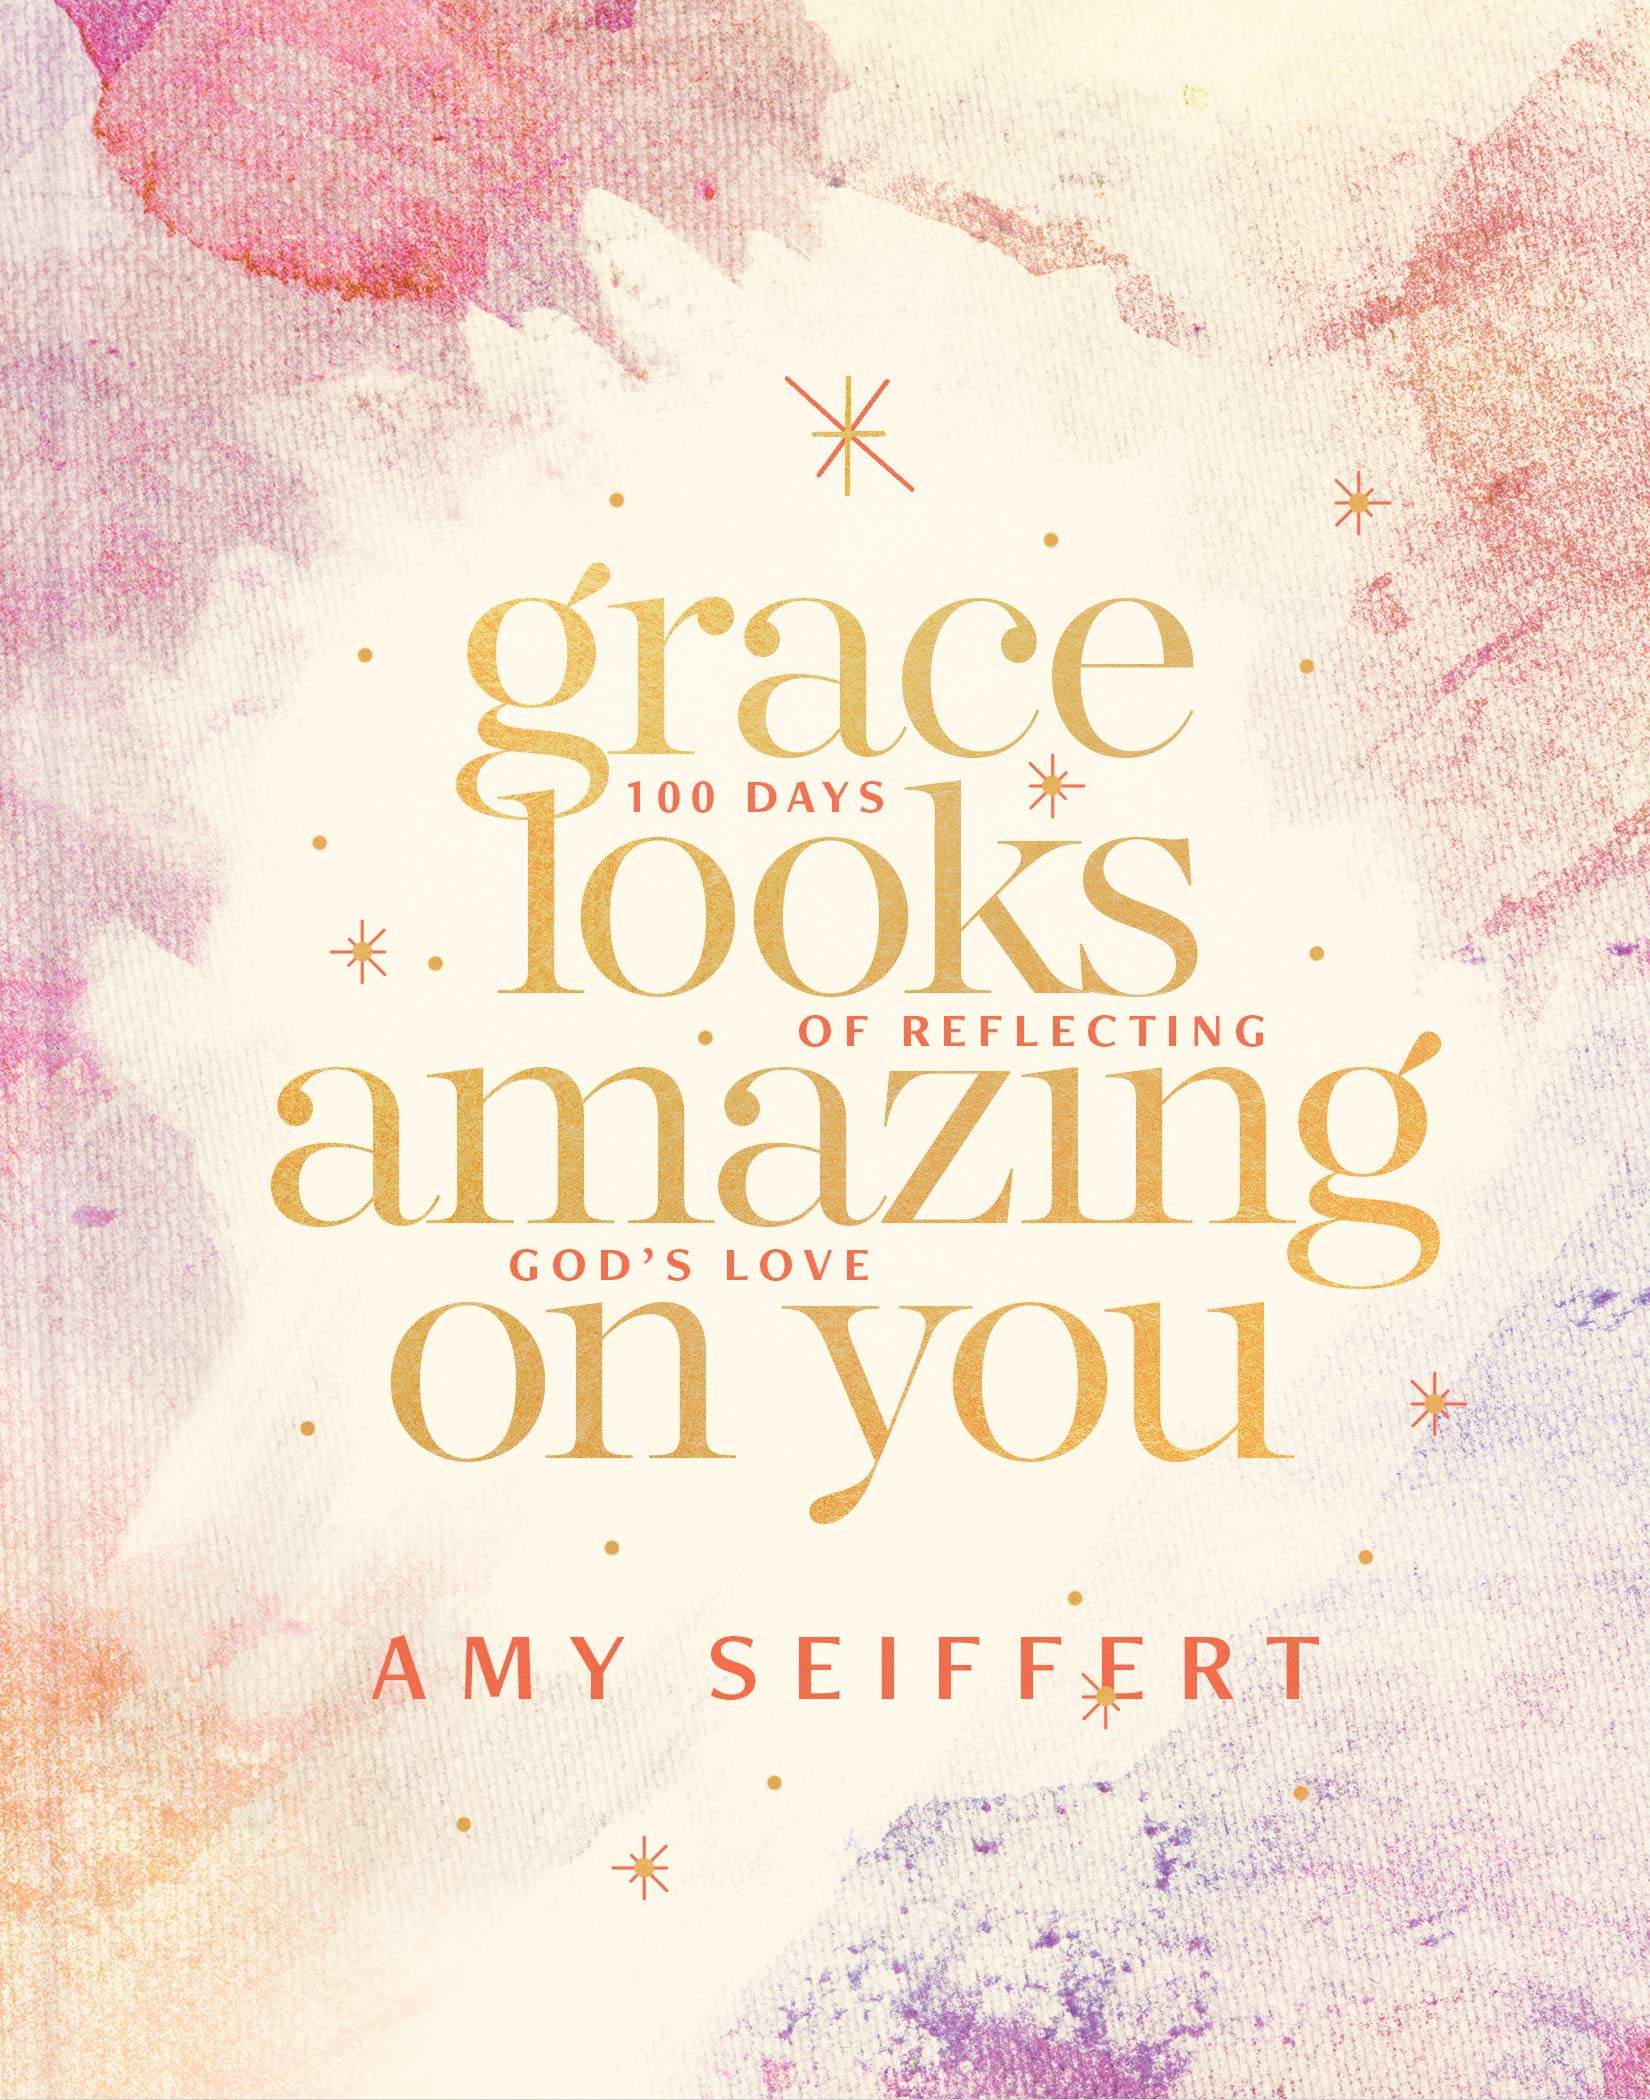 ROCKONLINE | New Creation Church | NCC | Joseph Prince | ROCK Bookshop | ROCK Bookstore | Star Vista | Grace Looks Amazing on You: 100 Days of Reflecting God's Love, Hardcover | Amy Seiffert | Tyndale | Christian Living | Devotional | Women |  Free delivery for Singapore Orders above $50.